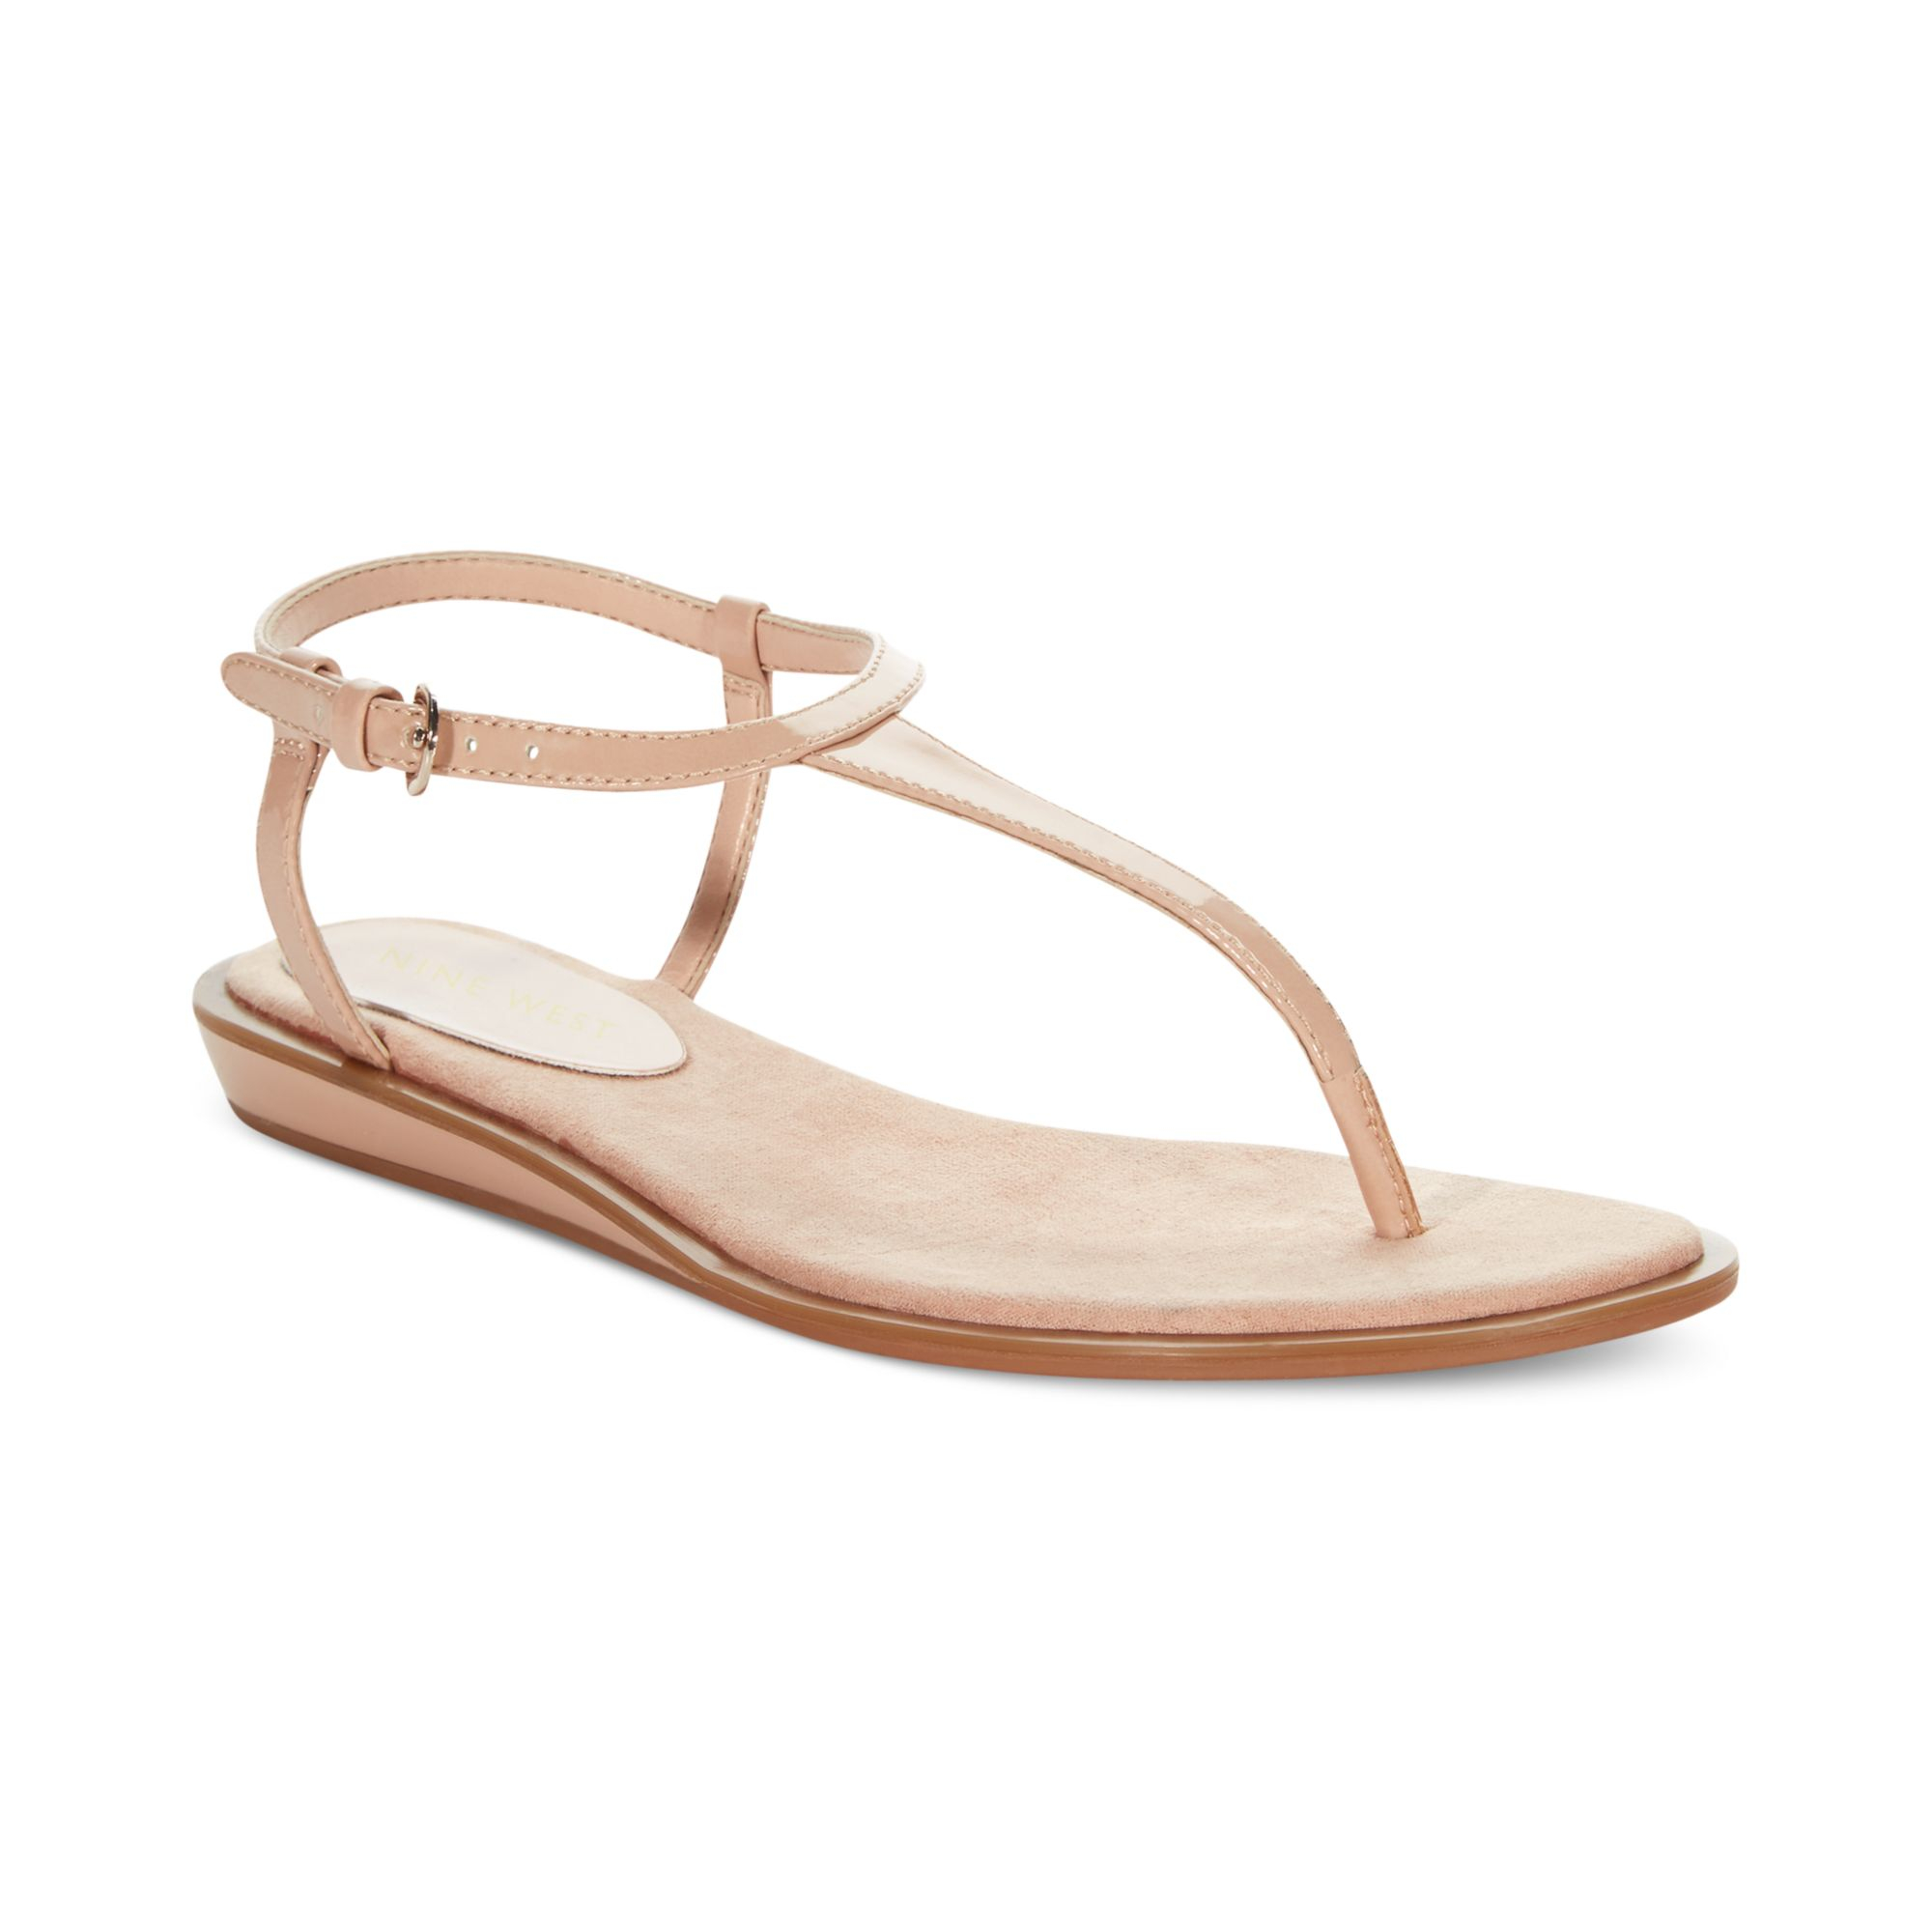 226073f3117c Lyst - Nine West Venga Thong Sandals in Natural